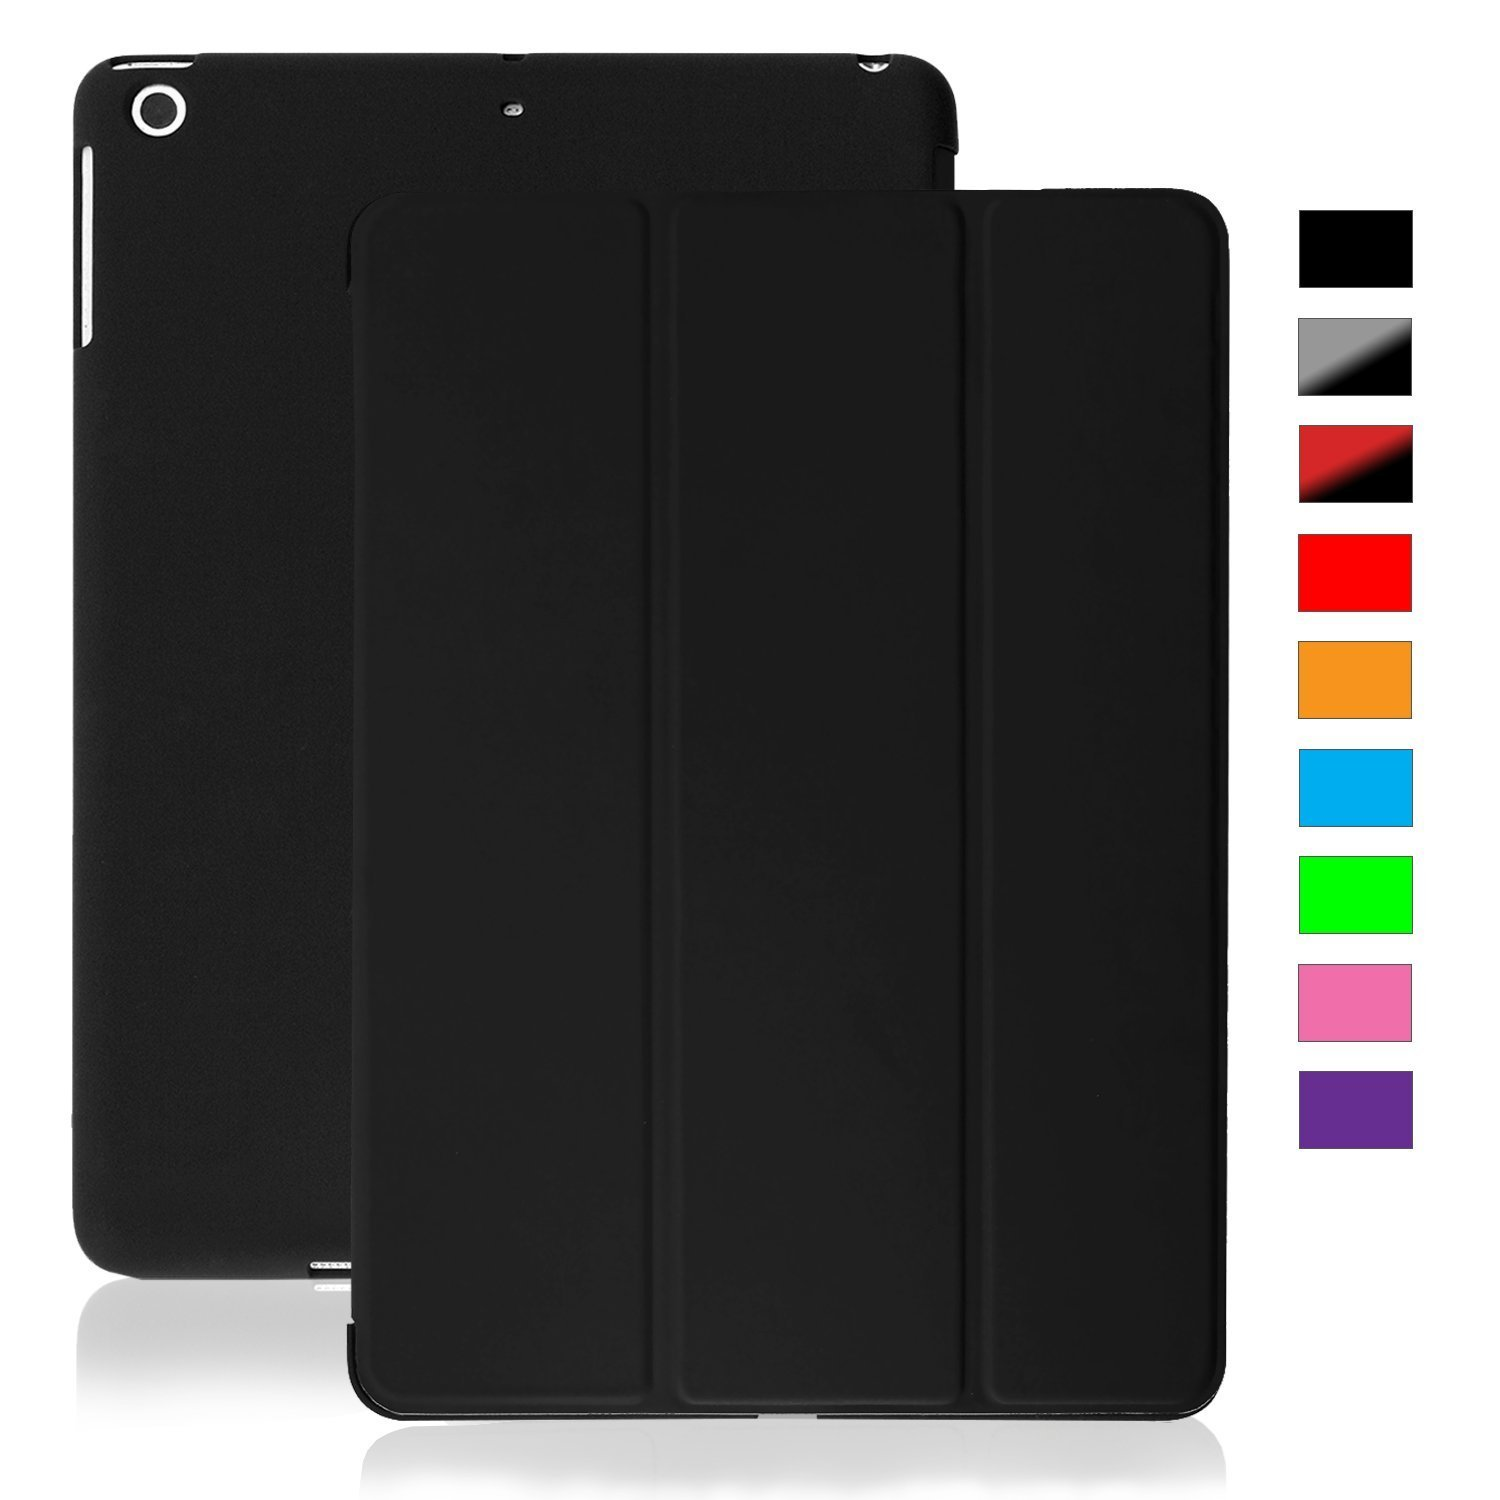 Back Covers For Tablets Cover With Rubberized Back